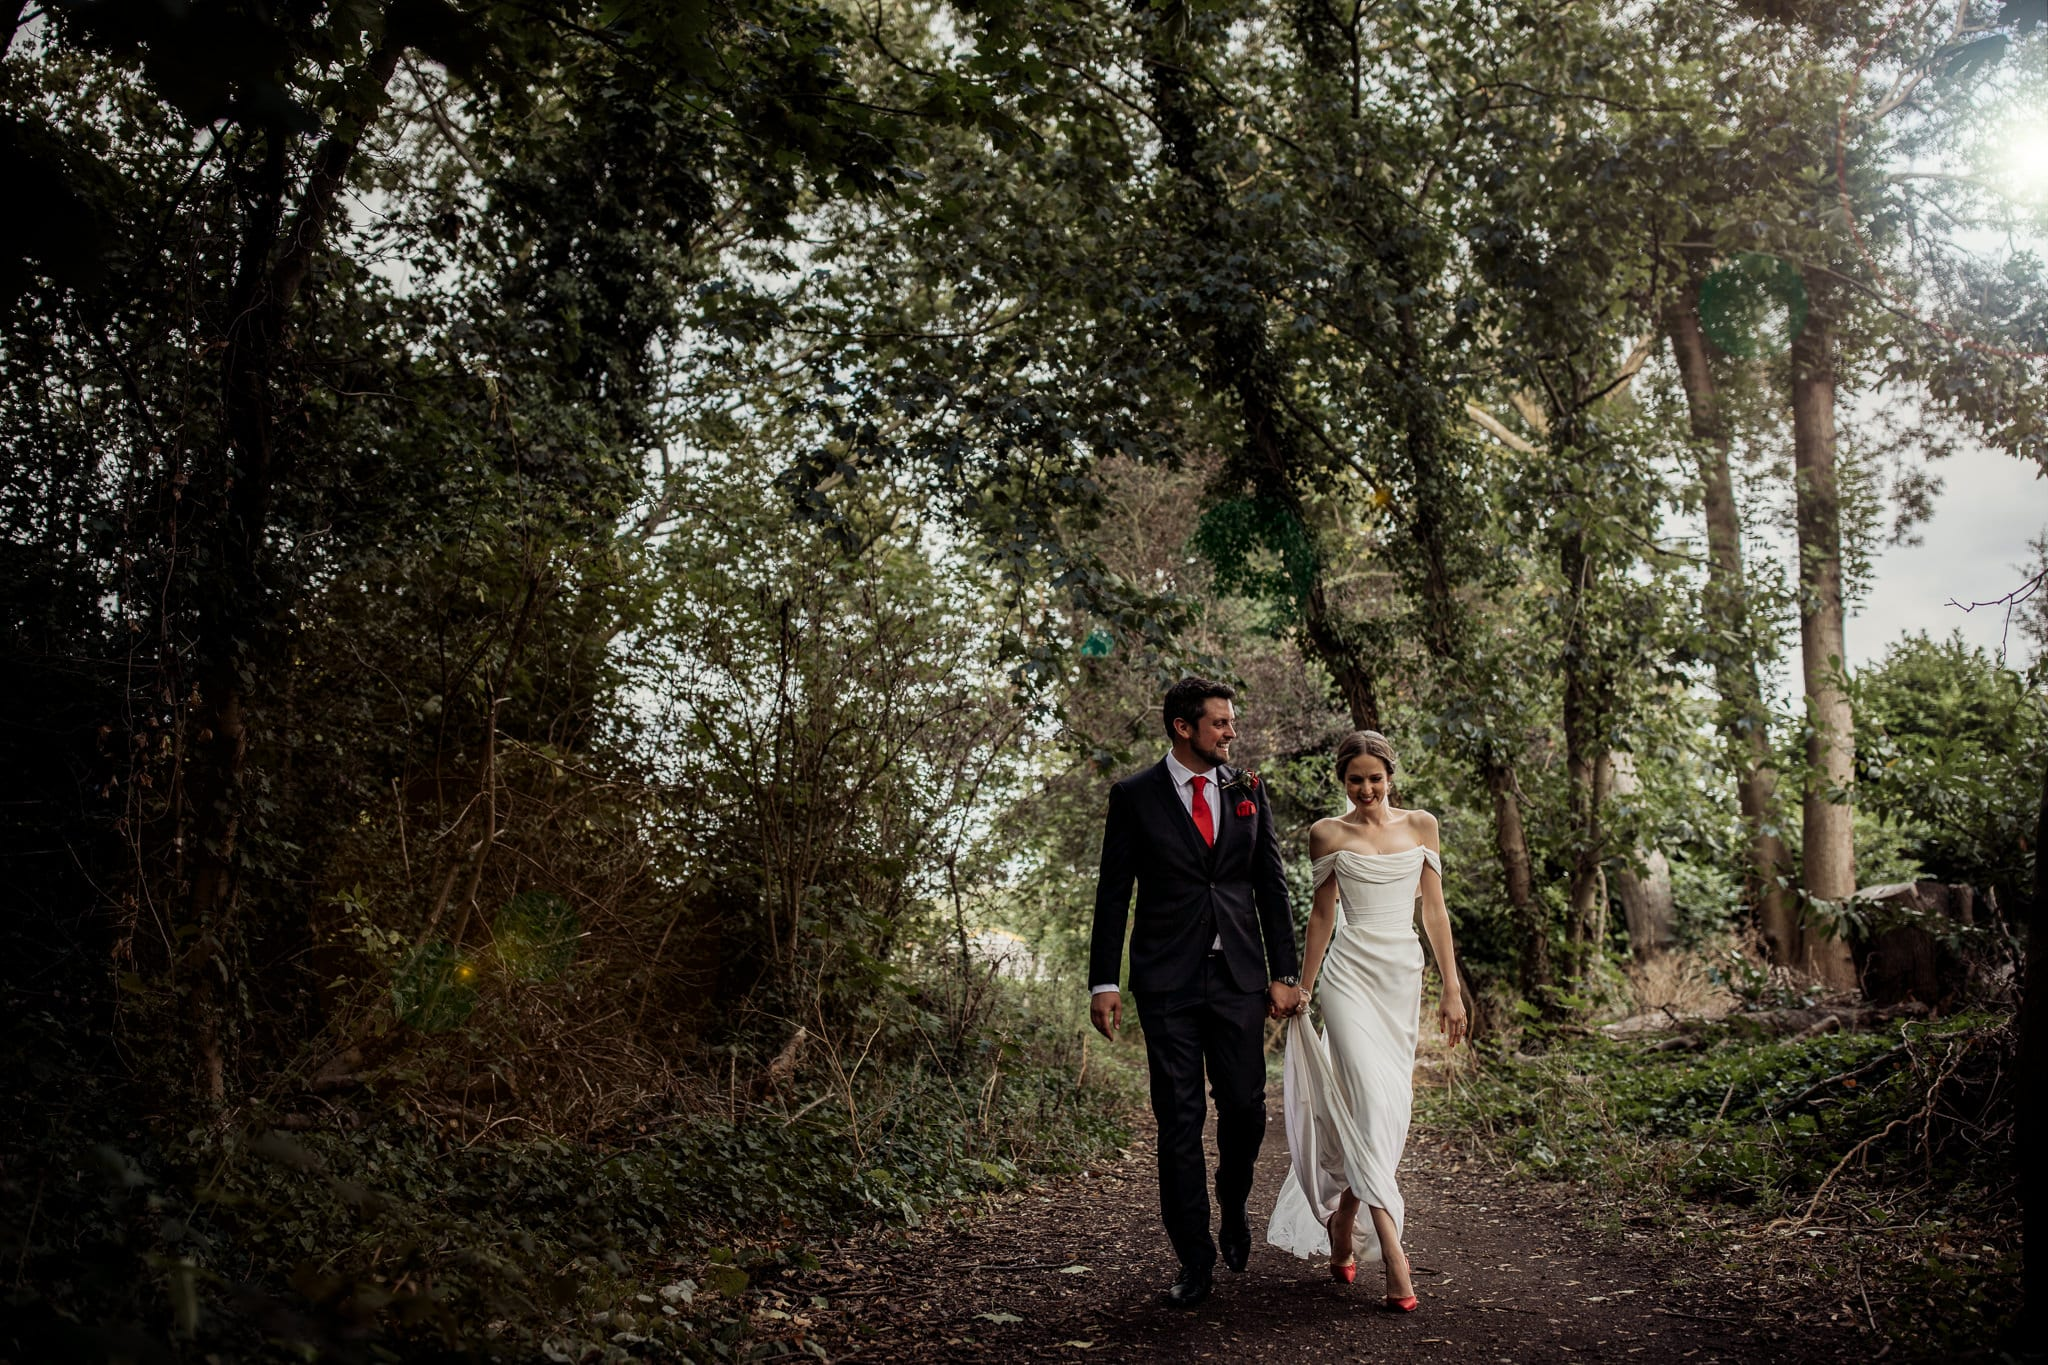 subride and groom walking in a forest